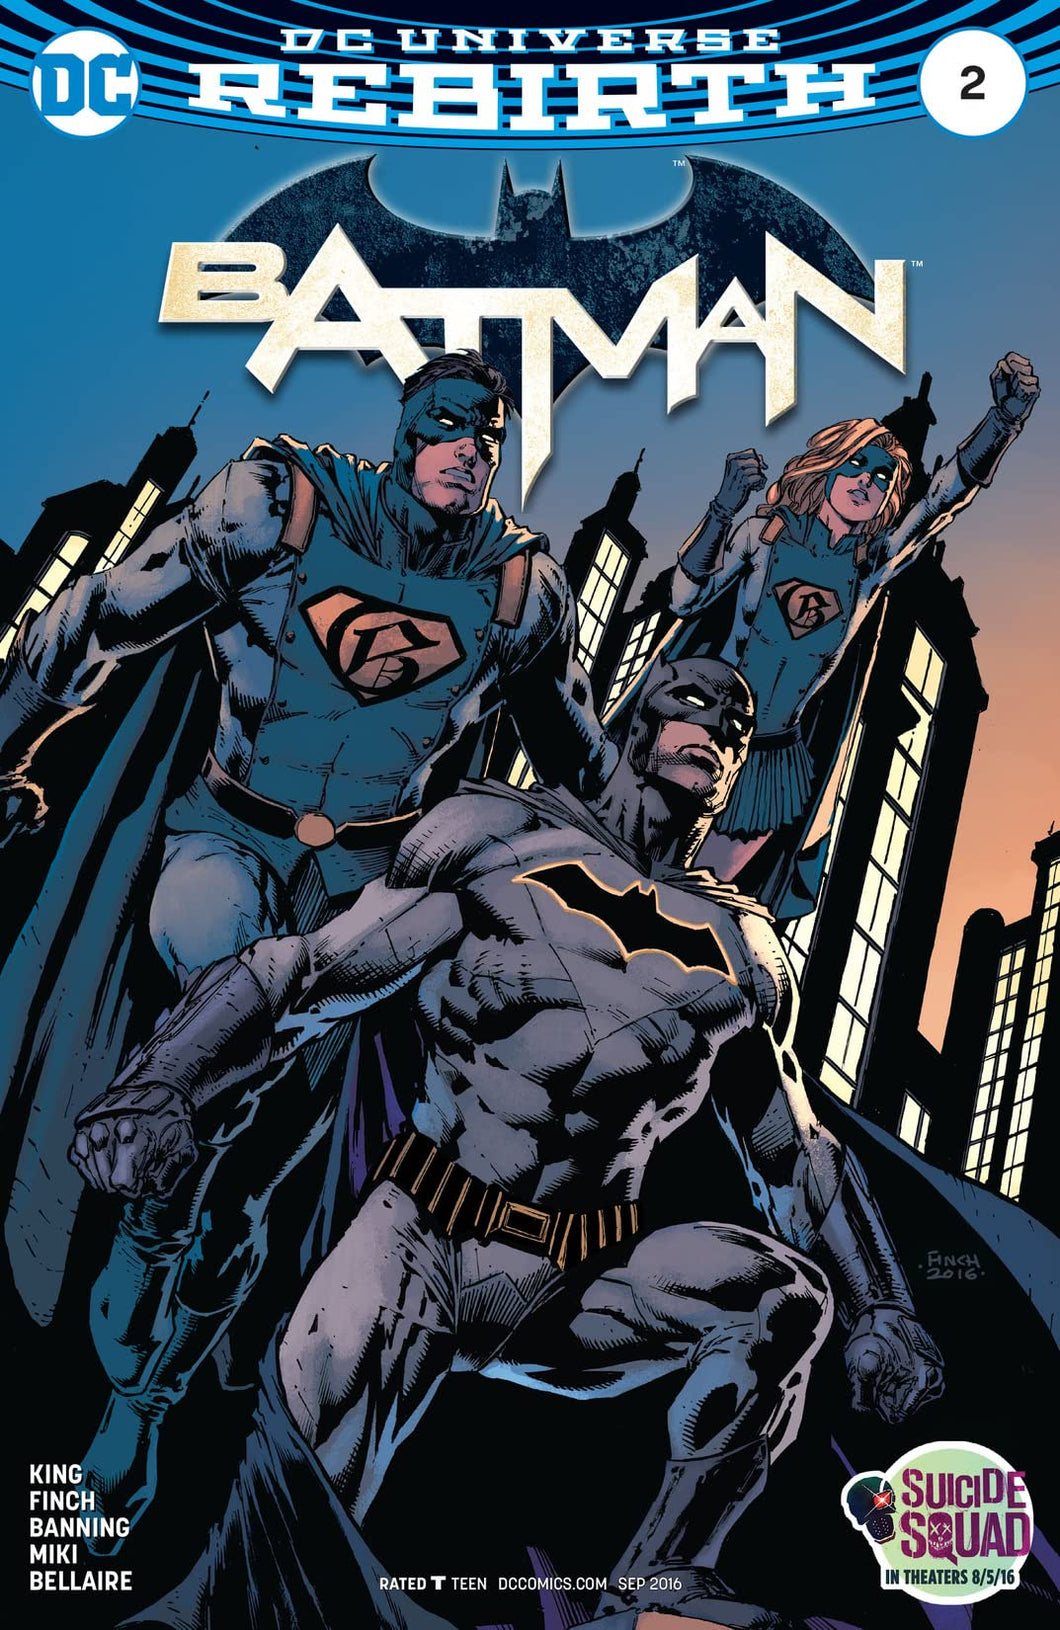 Batman#2 Vol.3  DC Universe Rebirth (2016)